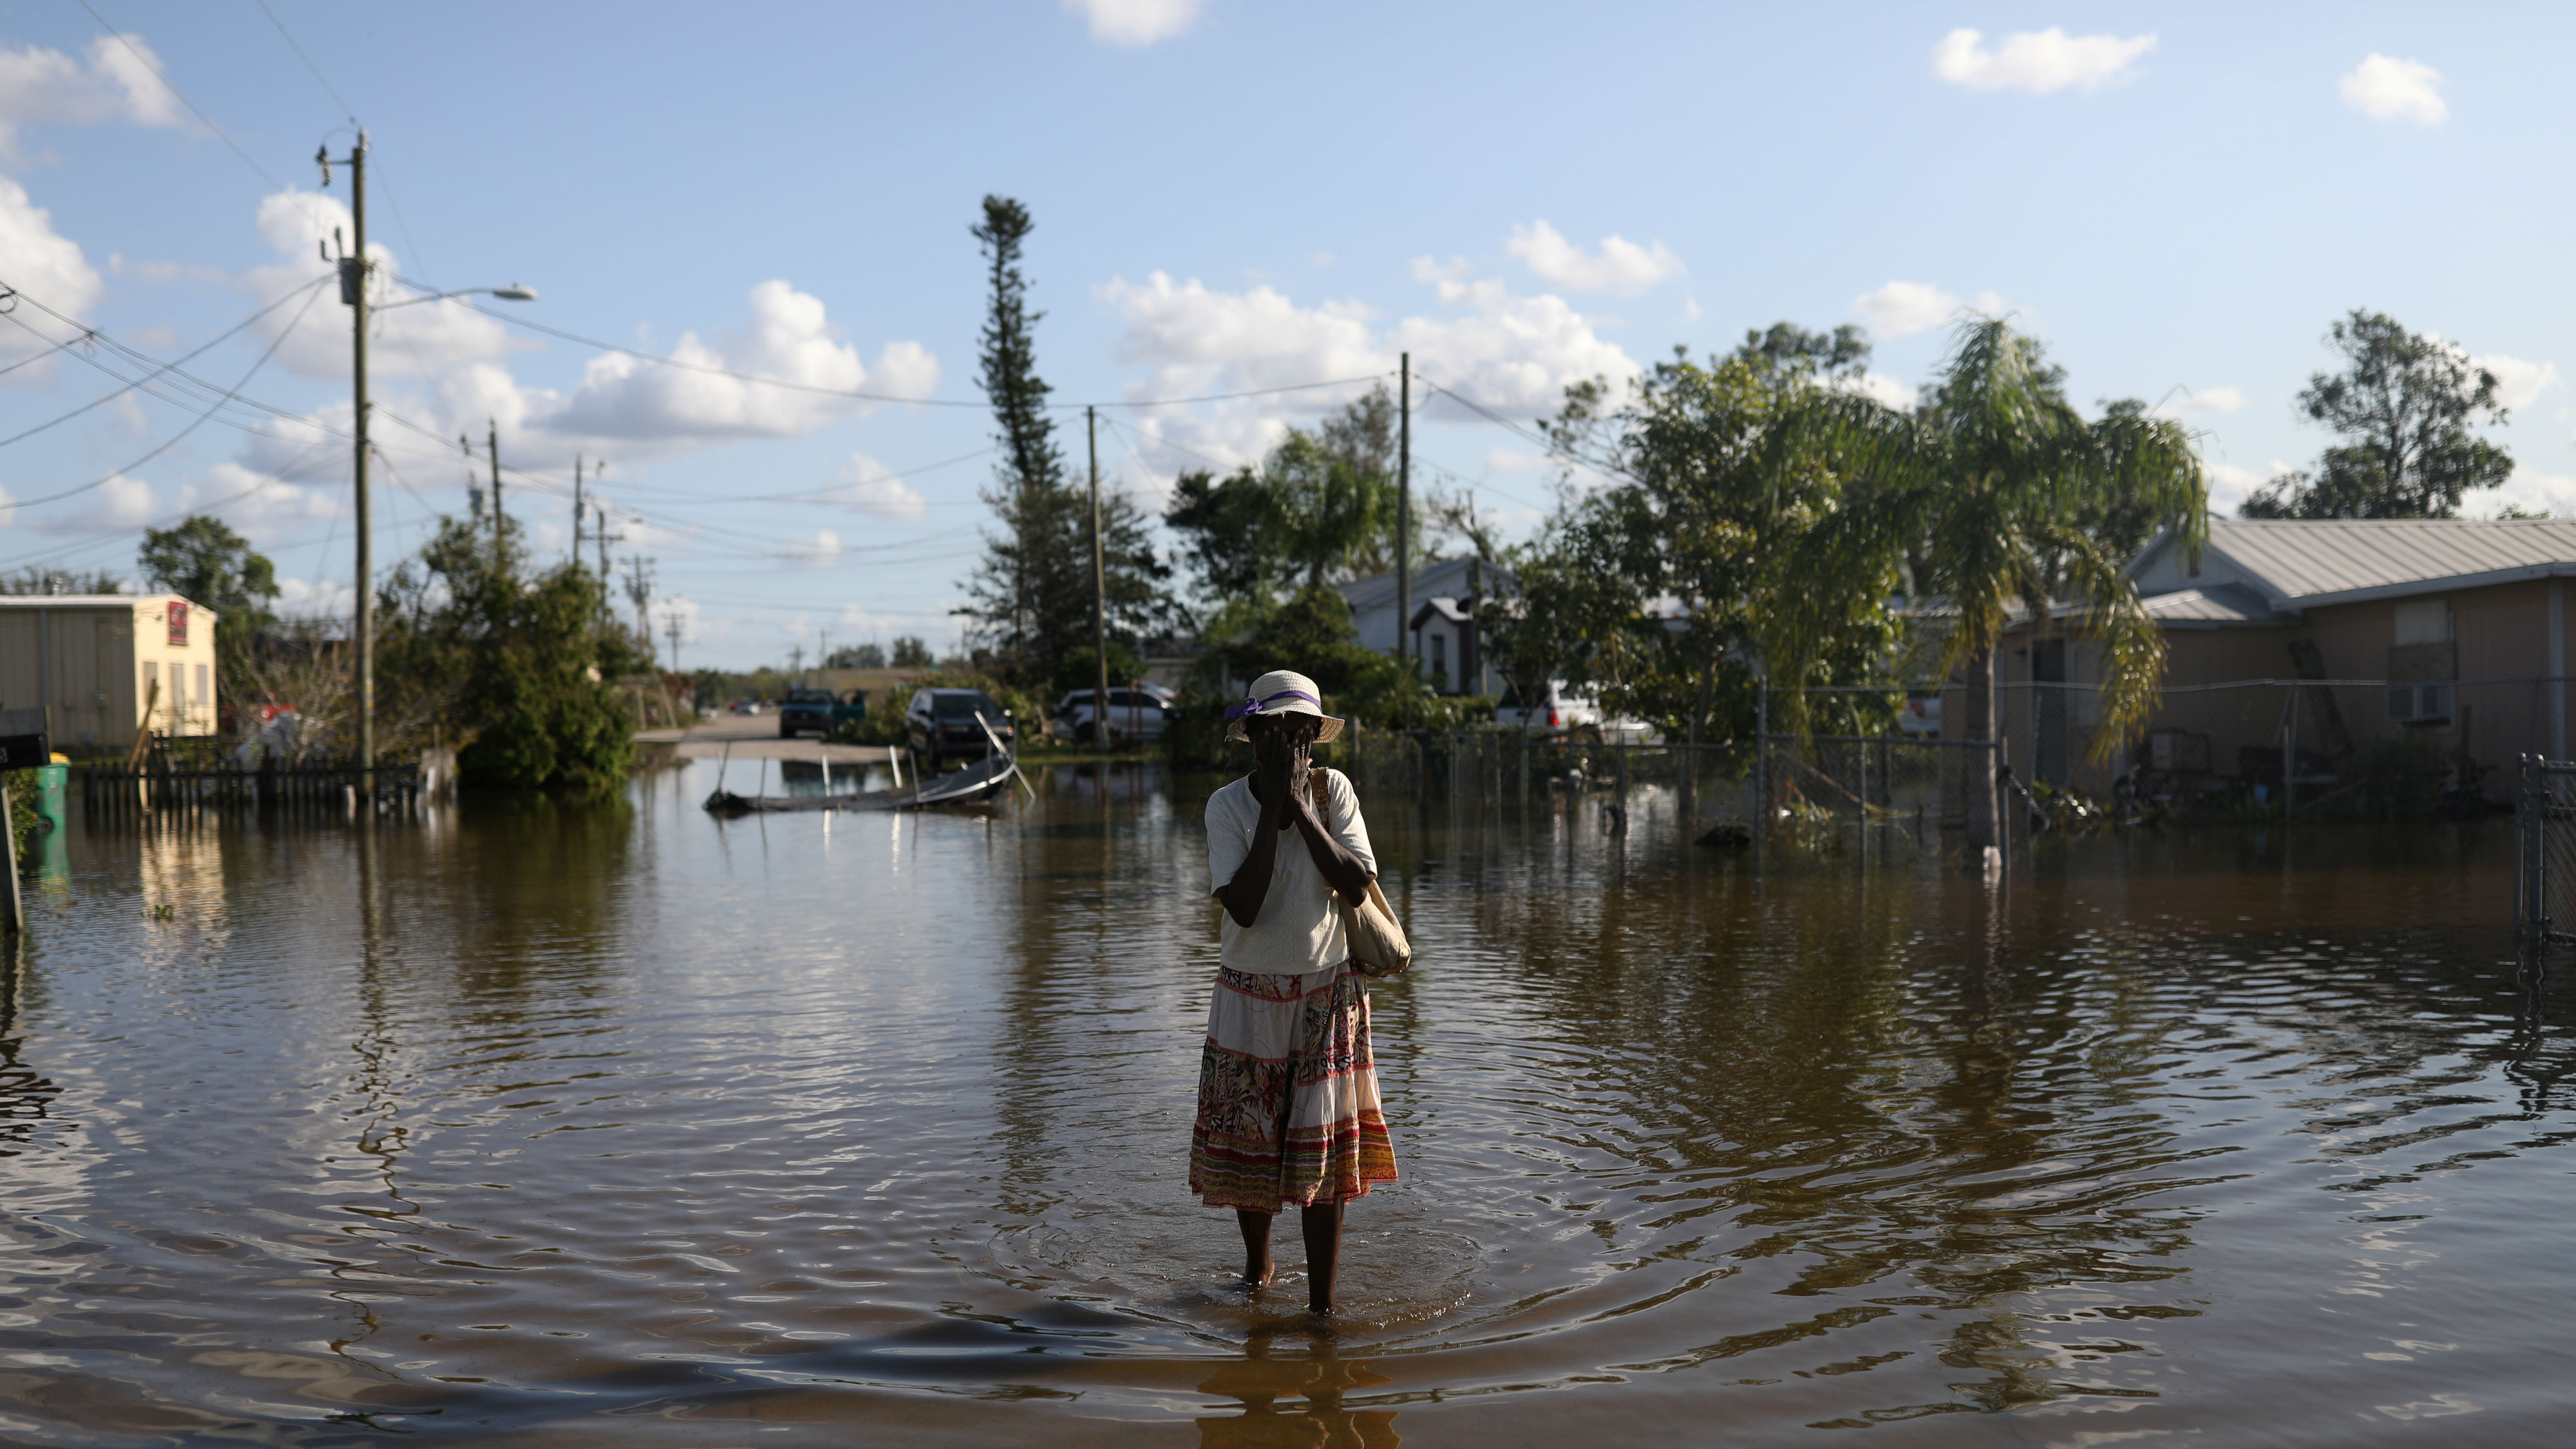 Maria Dorsaint wipes sweat from her face on the way to her church, Haitian United Evangelical Mission, which was damaged by flooding from Hurricane Irma in Immokalee, Florida, U.S. September 12, 2017